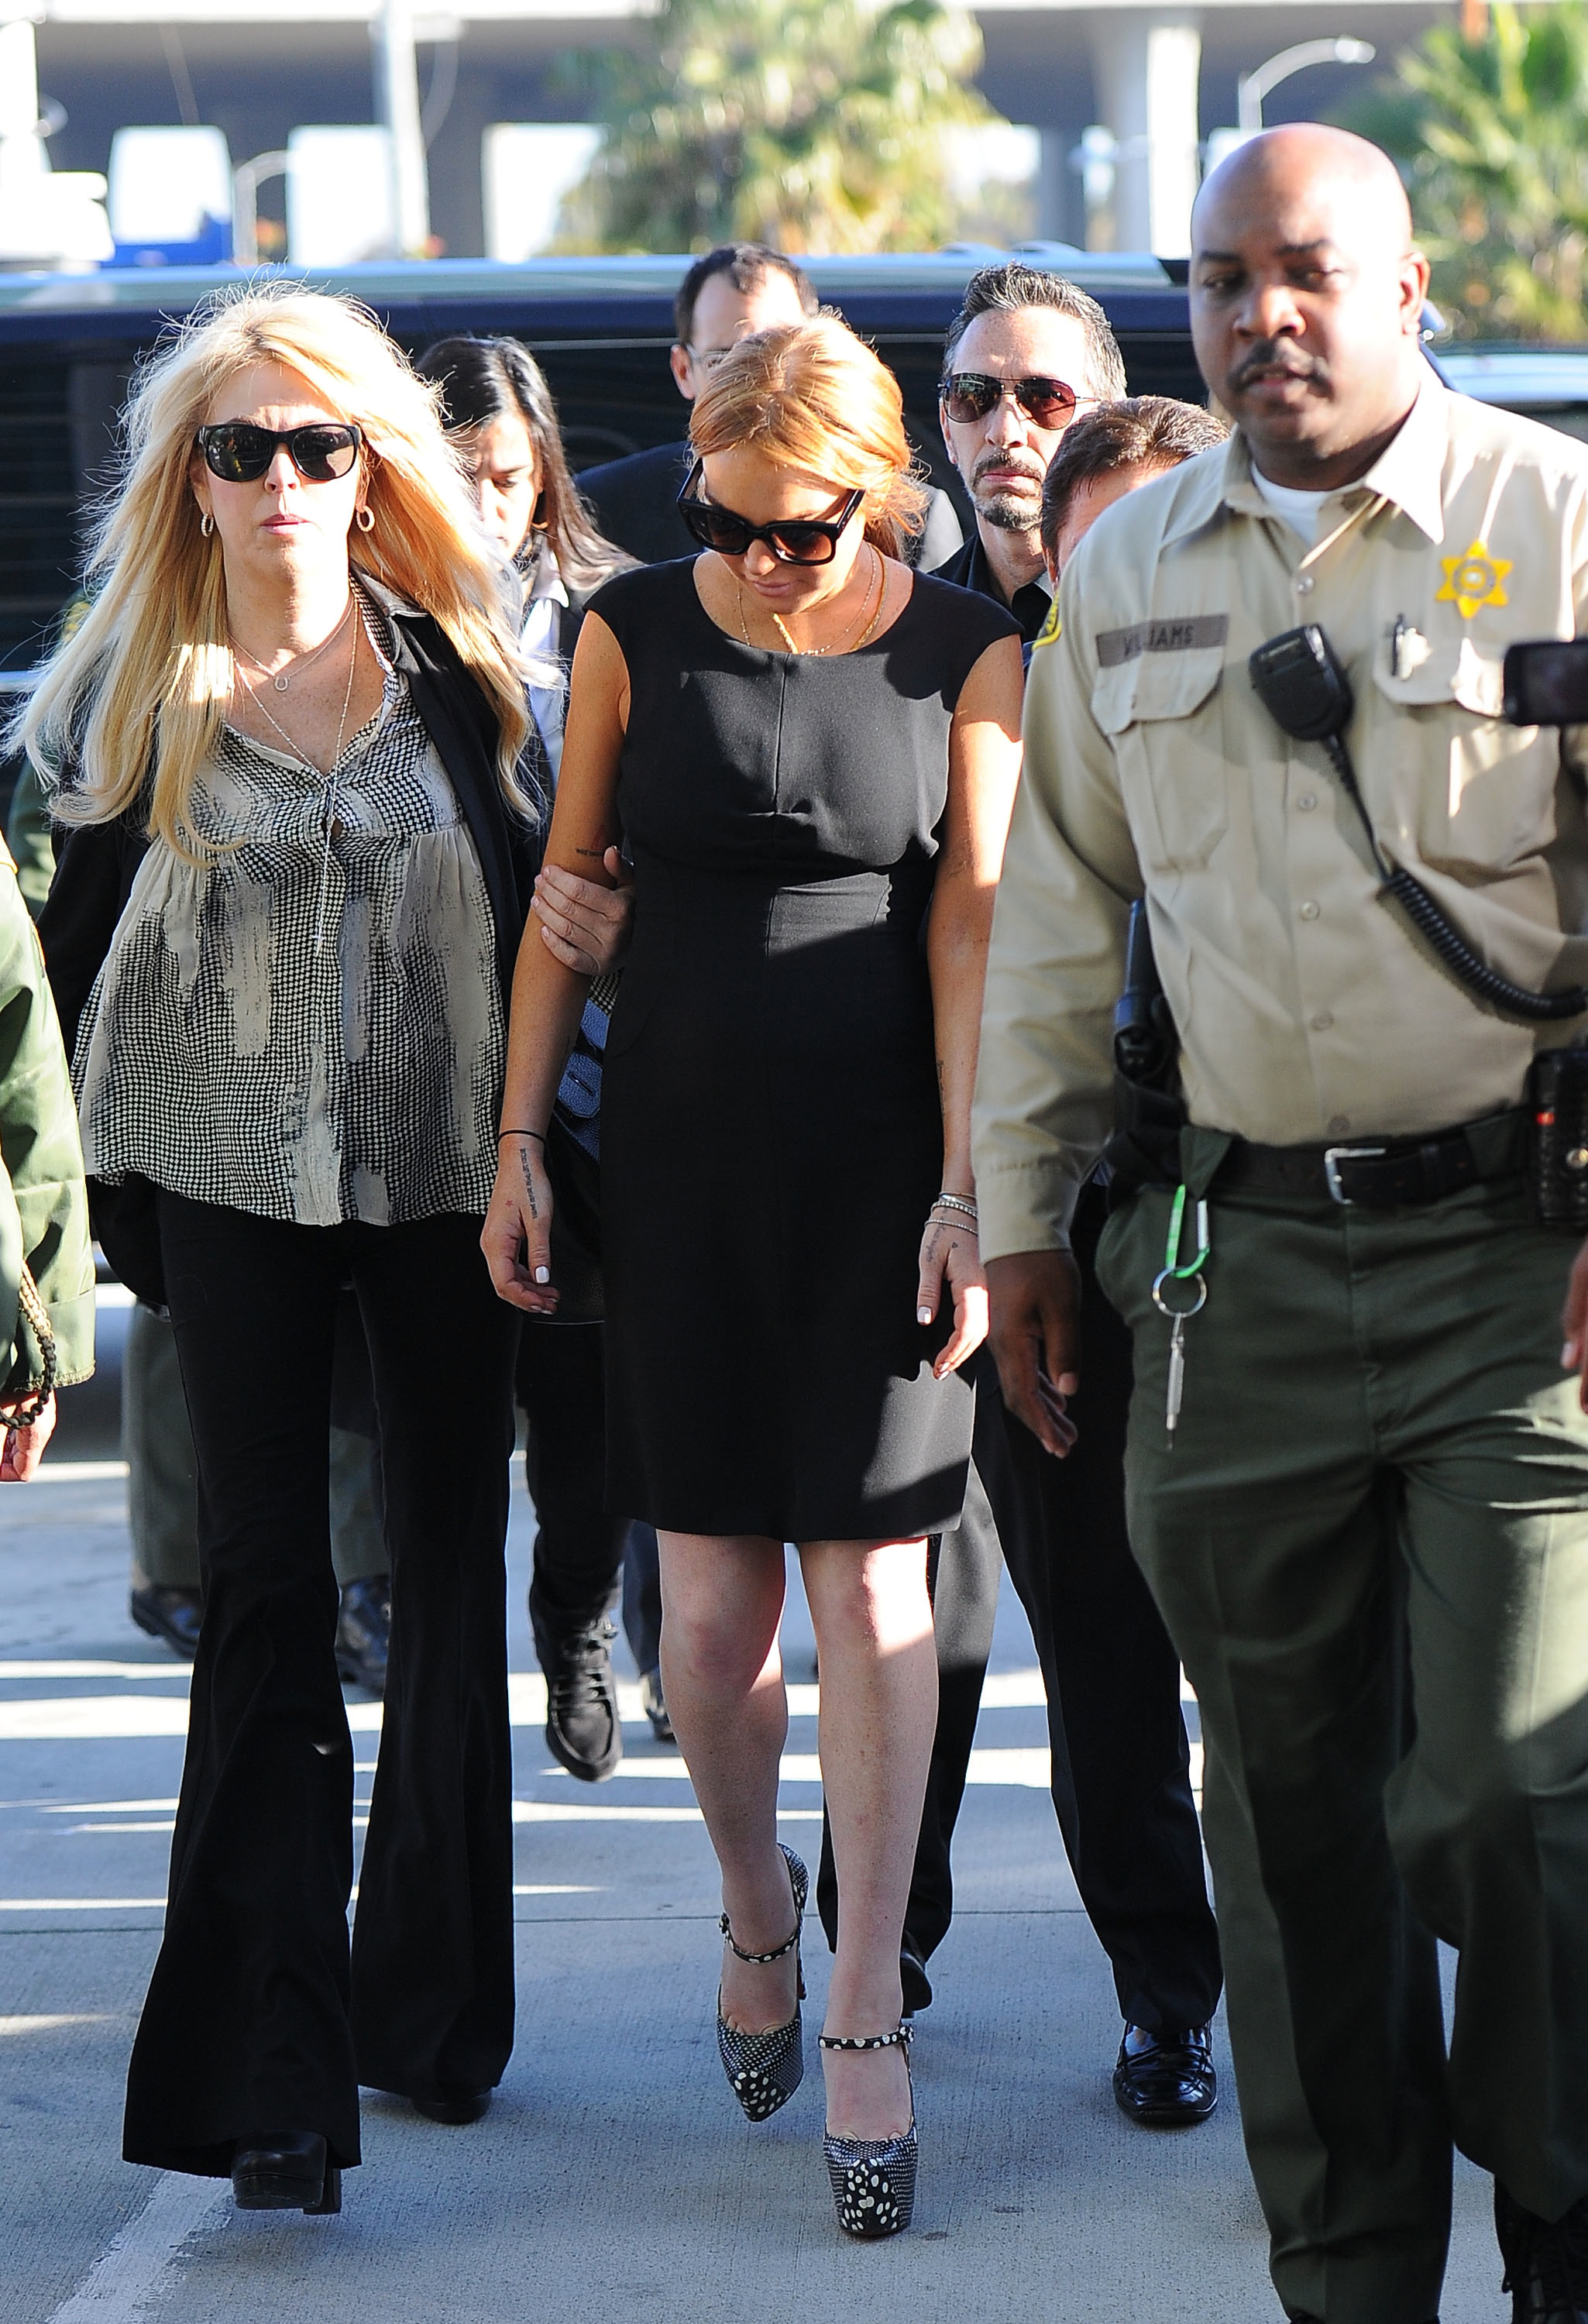 Lindsay Lohan is seen arriving at court with her mother, Dina, on January 30, 2013 in Los Angeles, California.